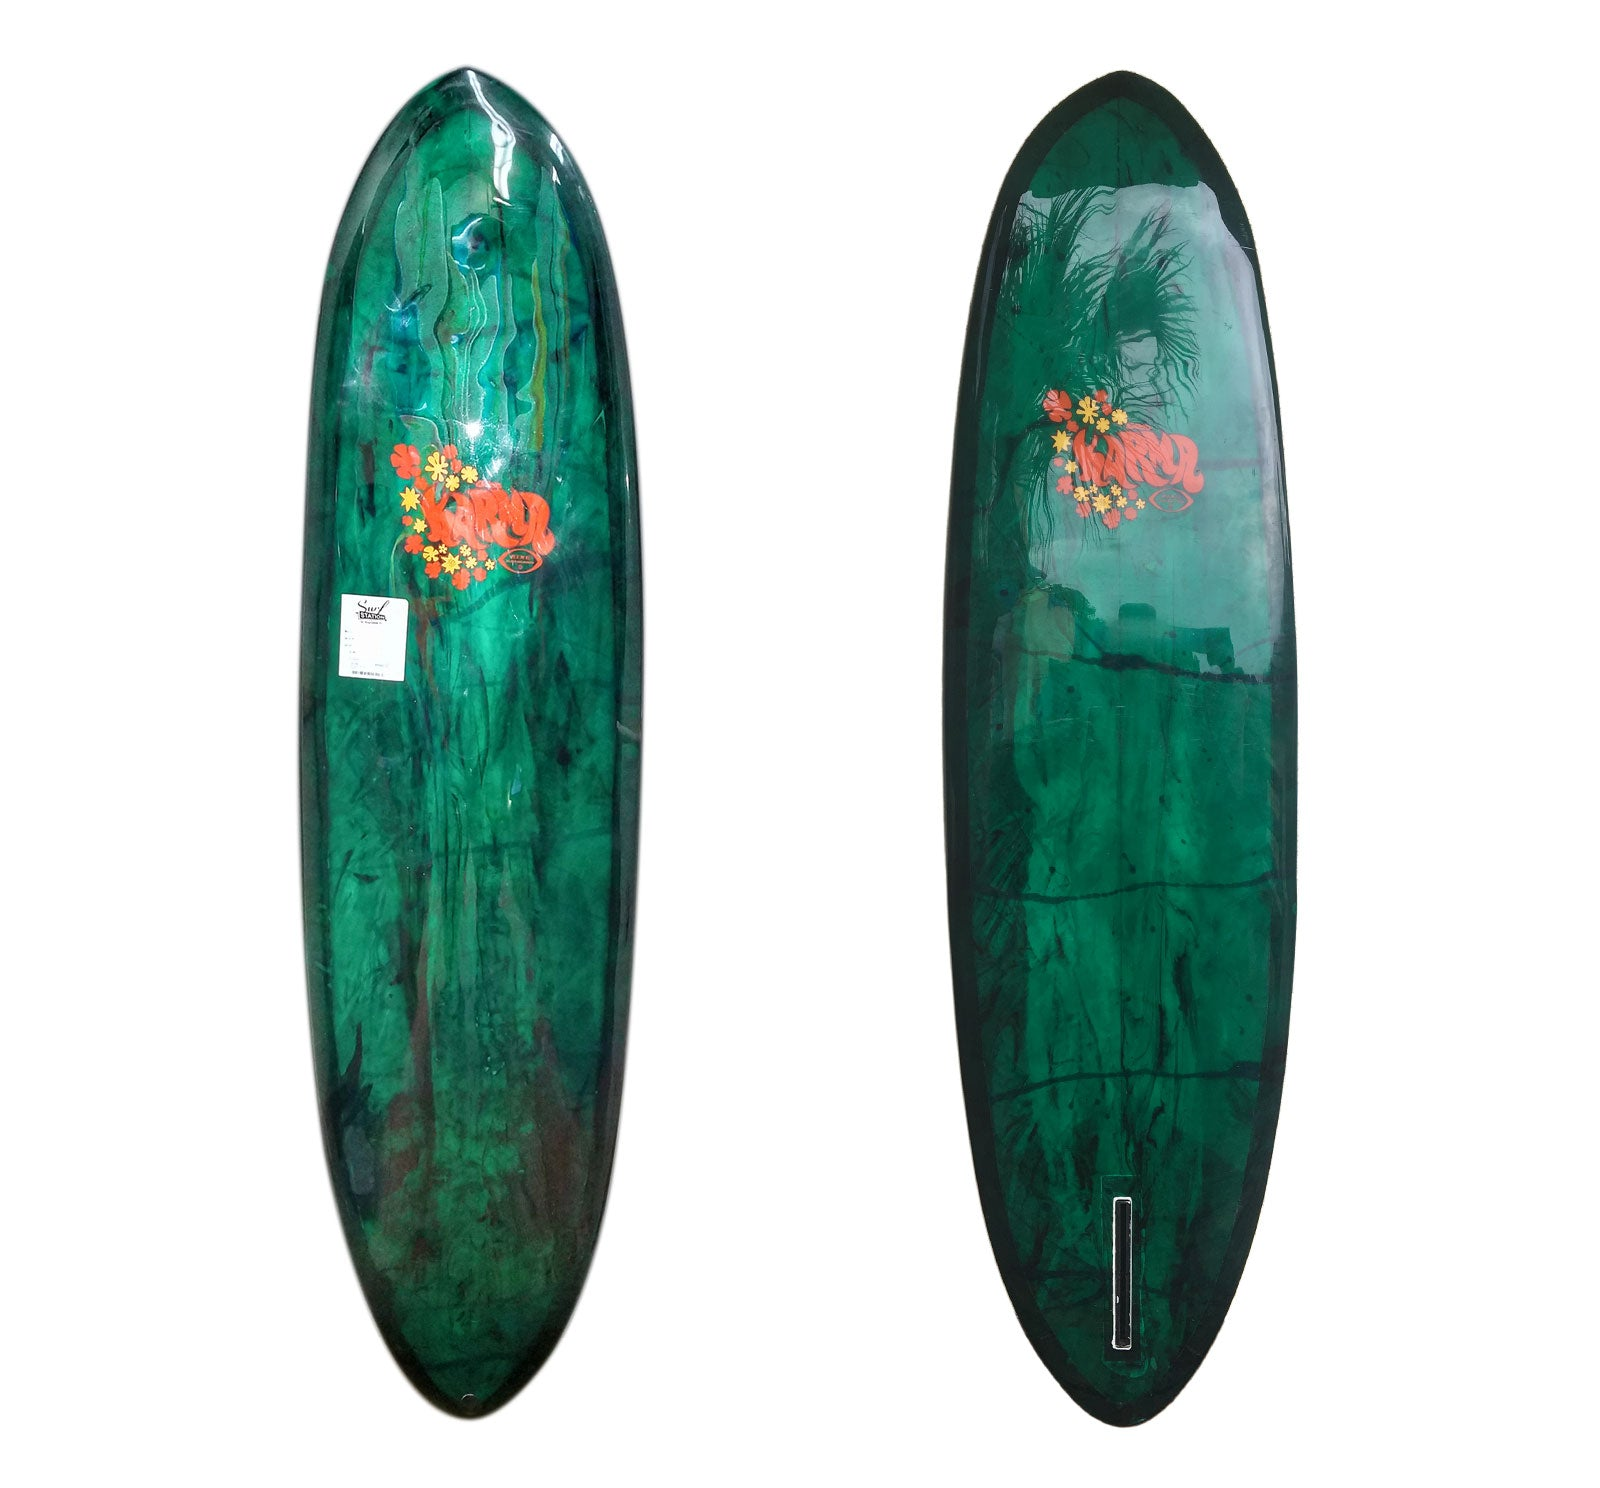 Bing Good Karma Collector Surfboard